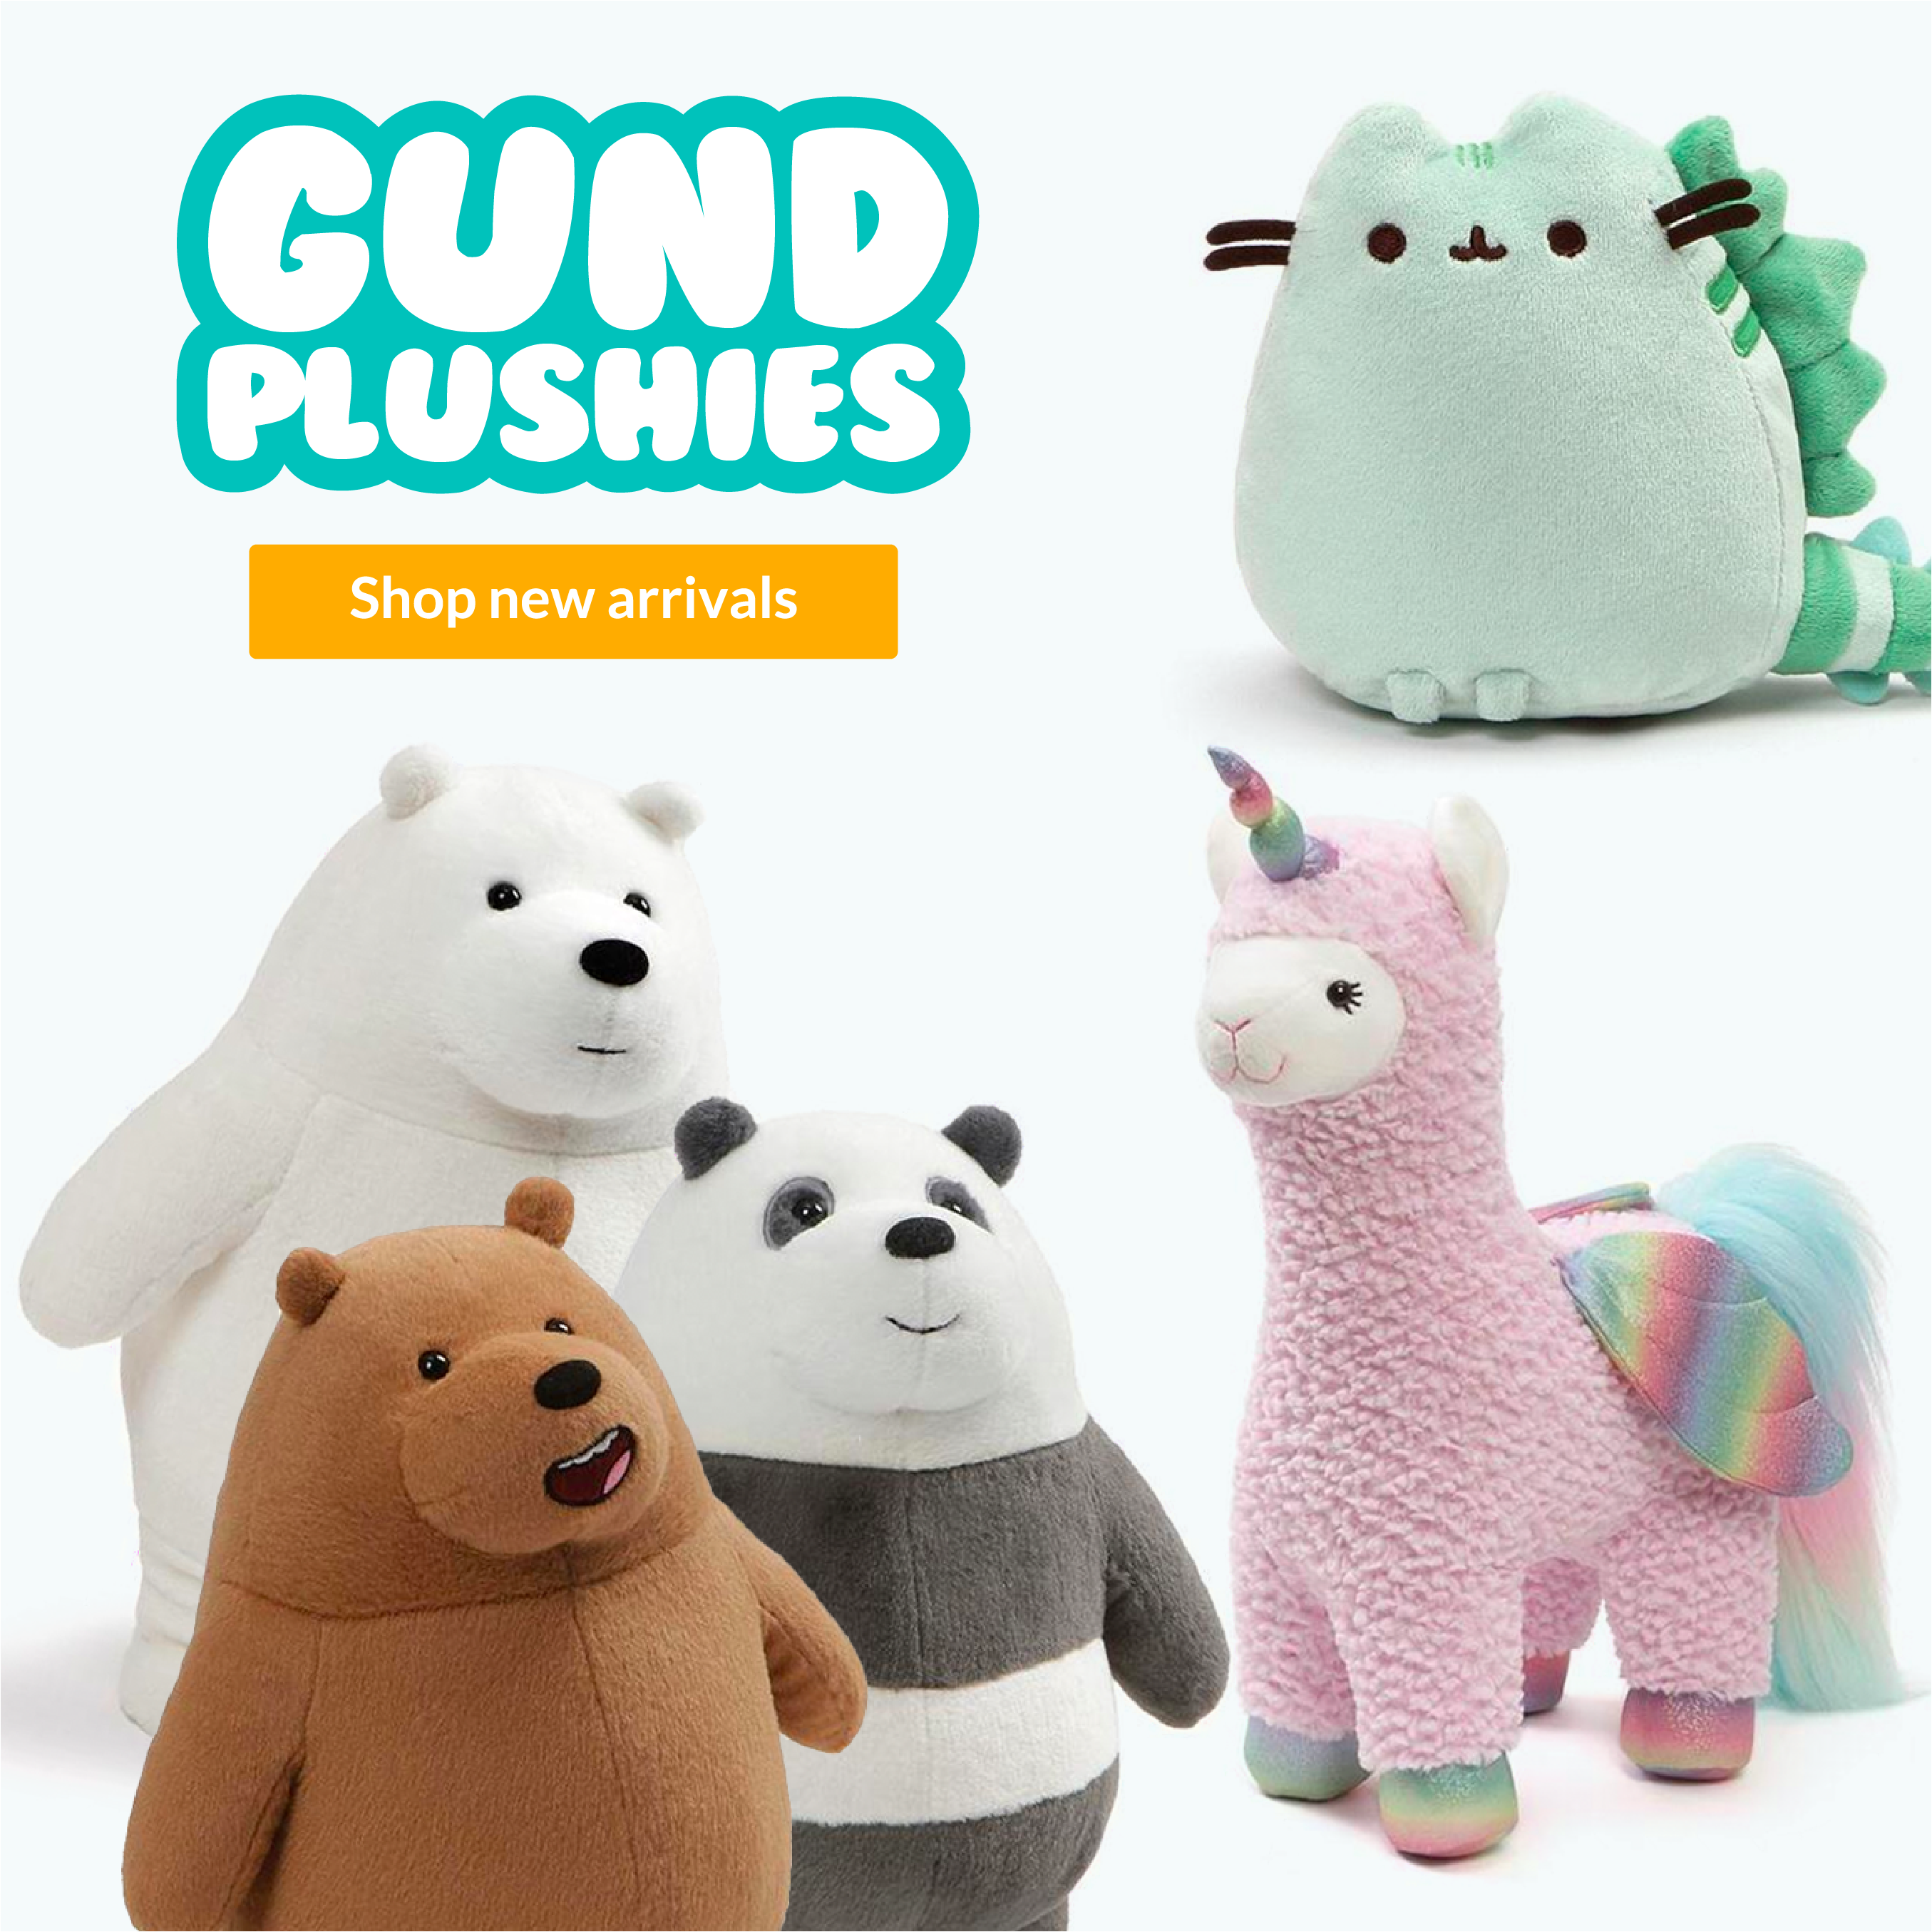 Gund Plush New Arrivals